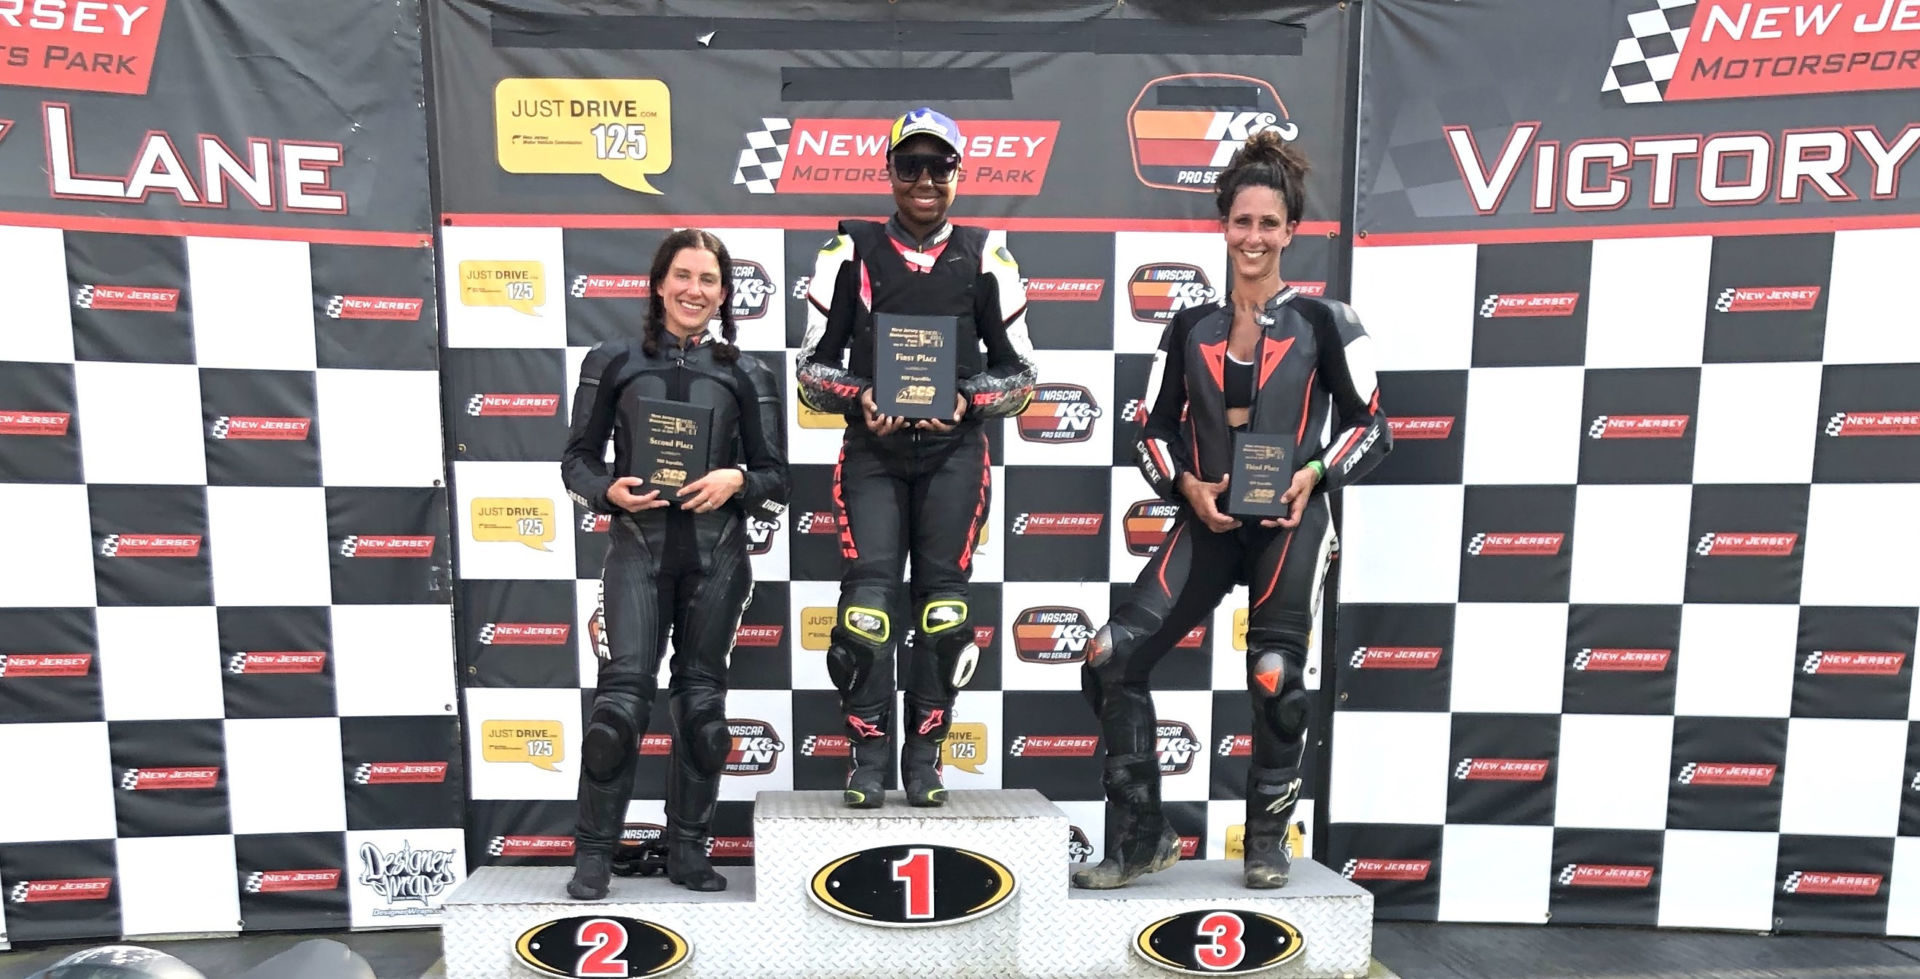 MotoGirlGT 500 Superbike race winner Mikayla Moore (center), runner-up Cassie Cuppek (left), and third-place finisher Michele Beneducci (right). Photo by Angela Izzo-Sink, courtesy MotoGirlGT.